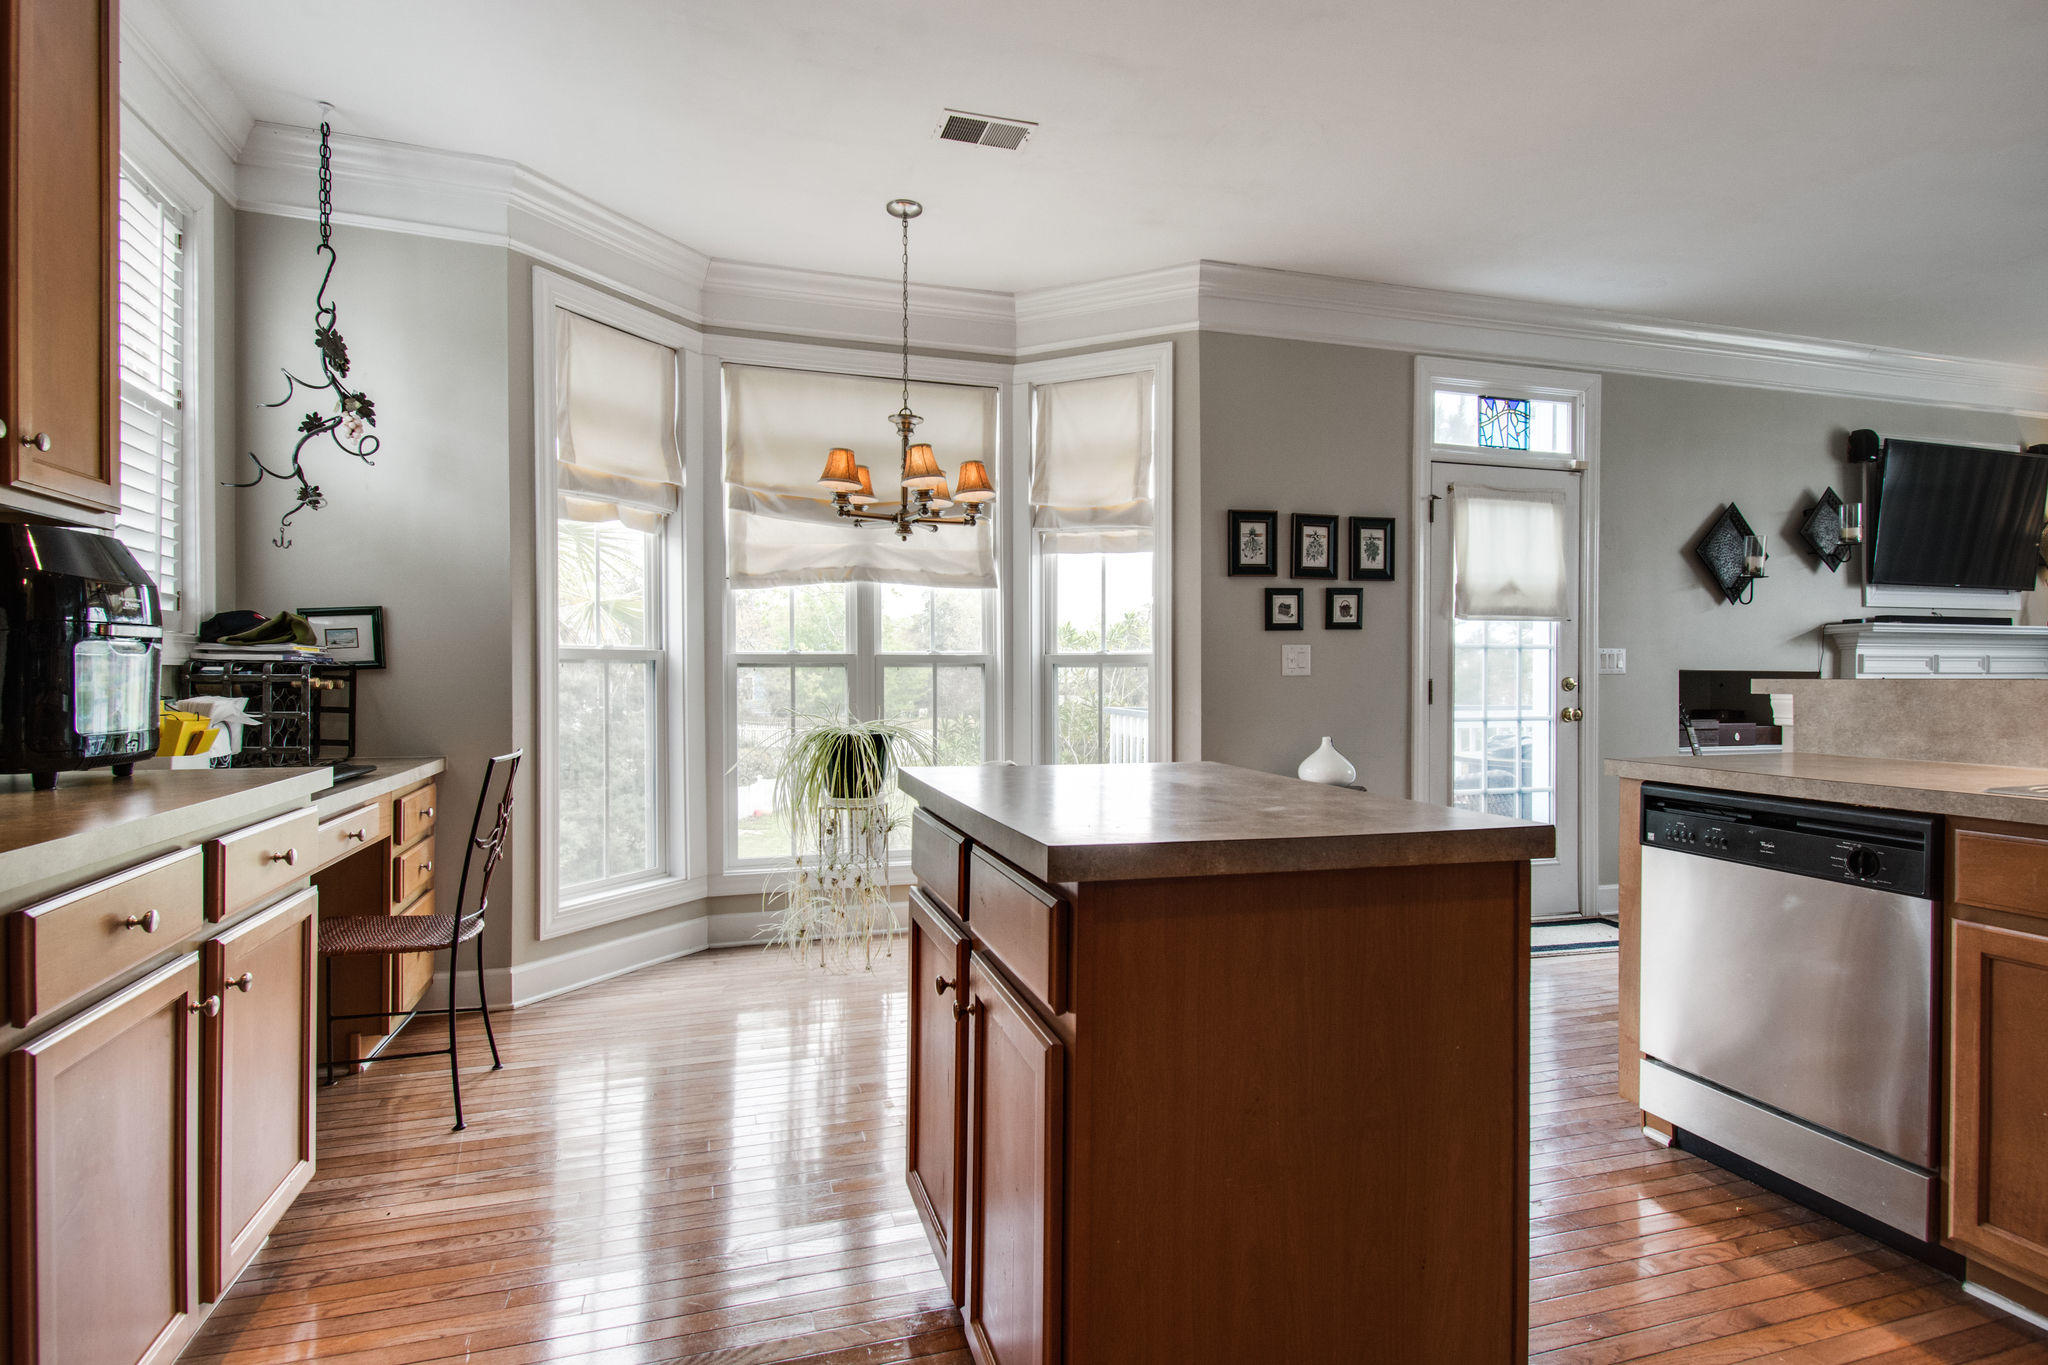 Rivertowne On The Wando Homes For Sale - 2226 Marsh, Mount Pleasant, SC - 22